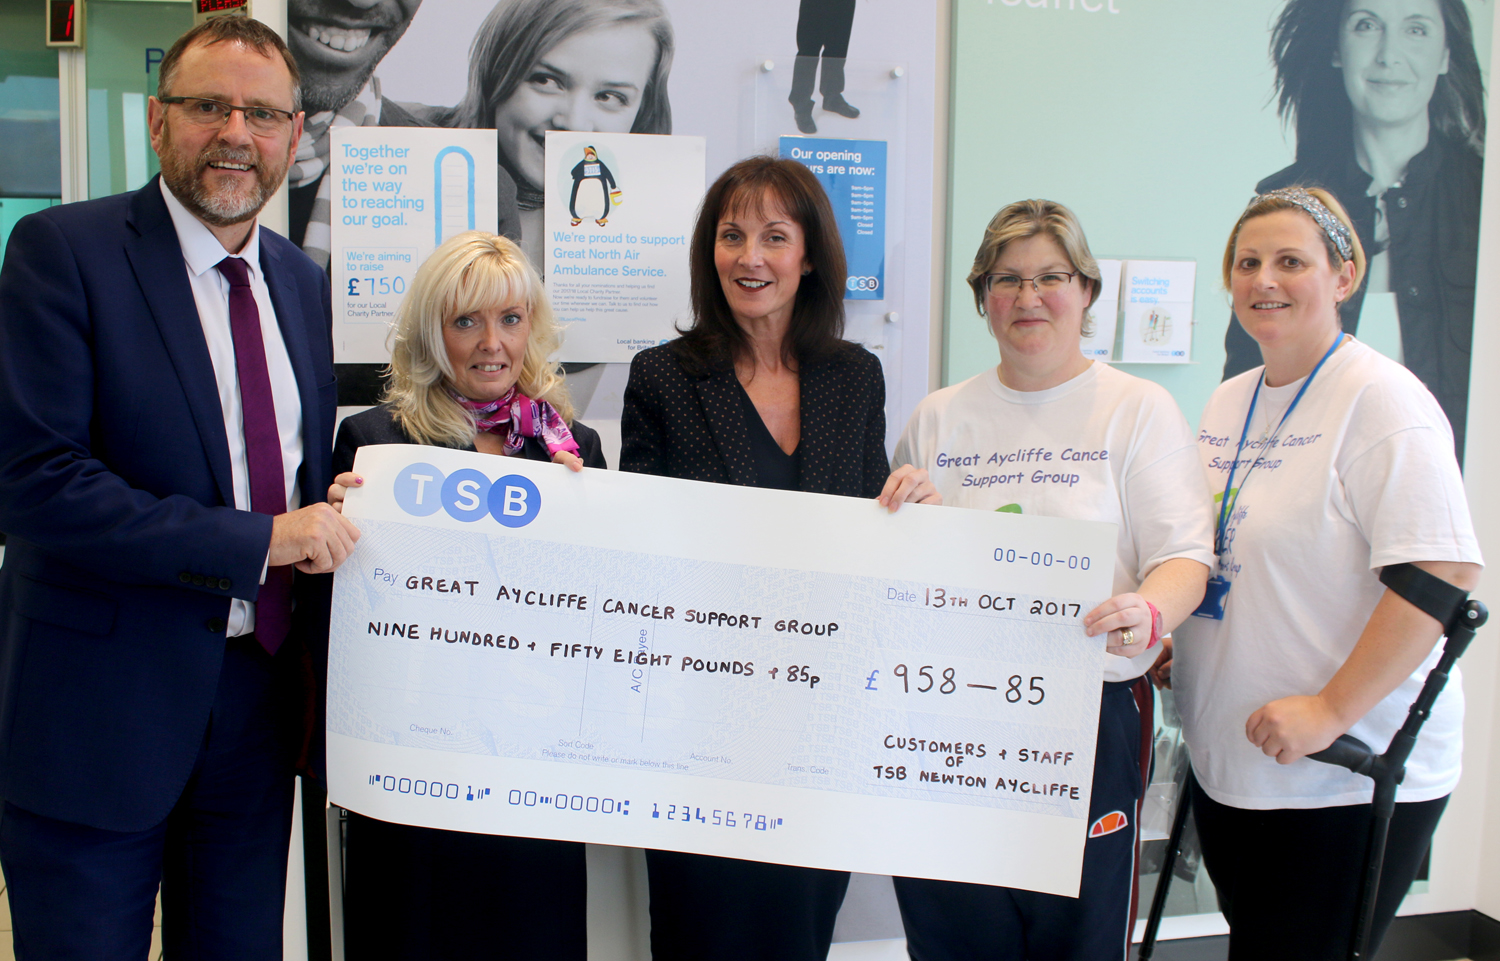 TSB Staff & Customers Support Local Charity & Air Ambulance